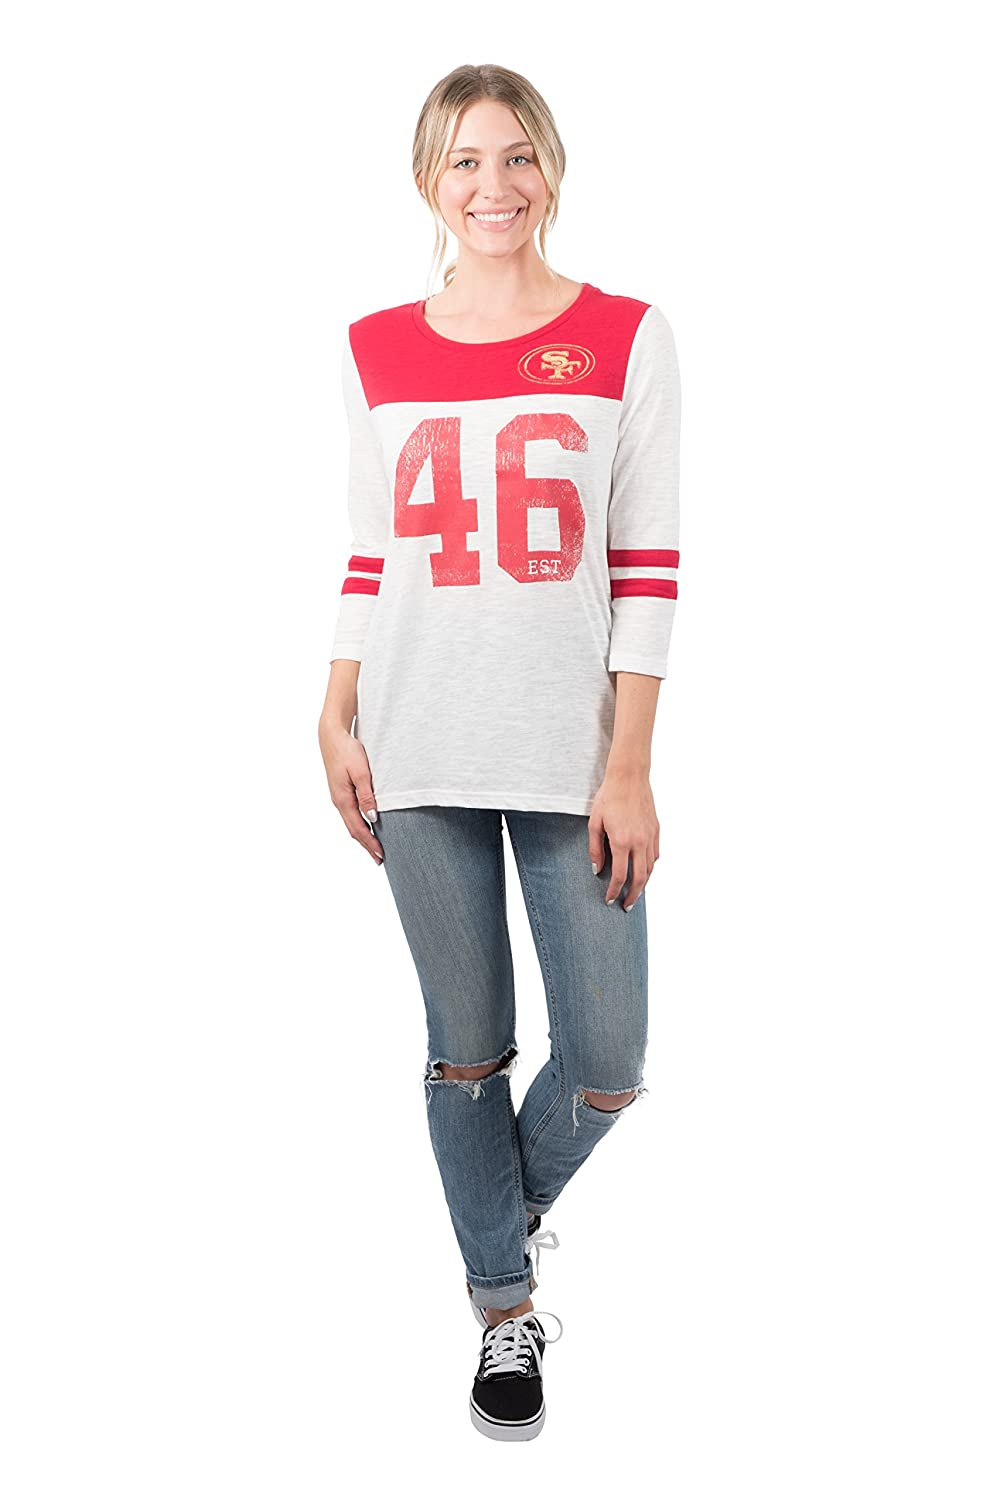 detailed look 9695a bdf02 Ultra Game NFL San Francisco 49ers Women's Vintage 3/4 Long Sleeve Tee  Shirt, White, X-Large